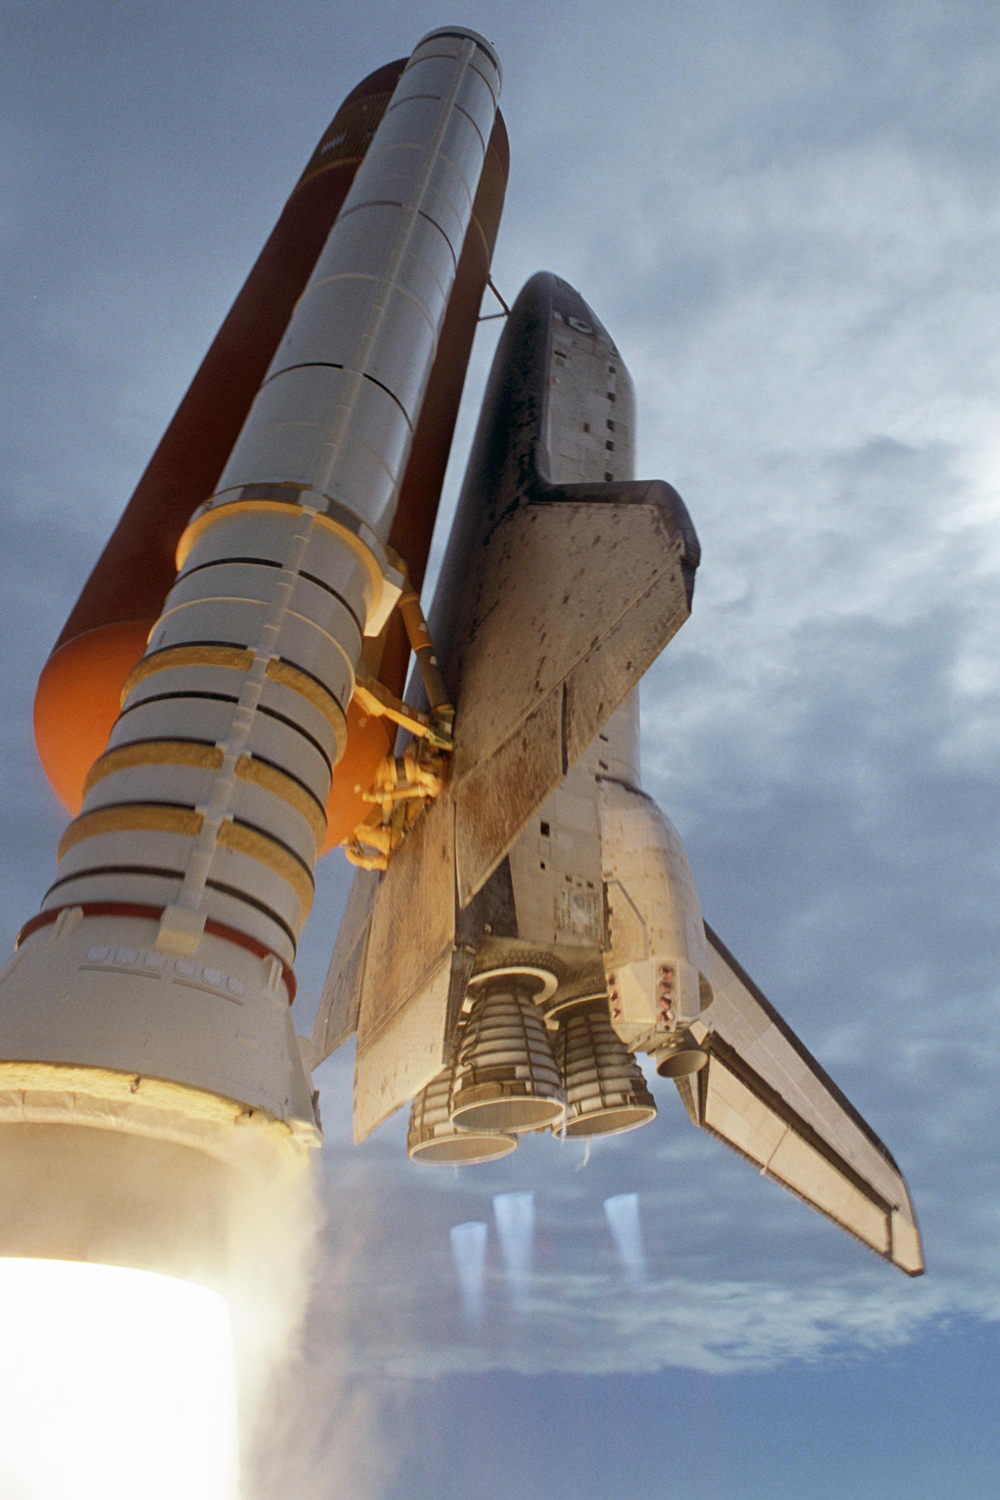 nasa space shuttle project - photo #10